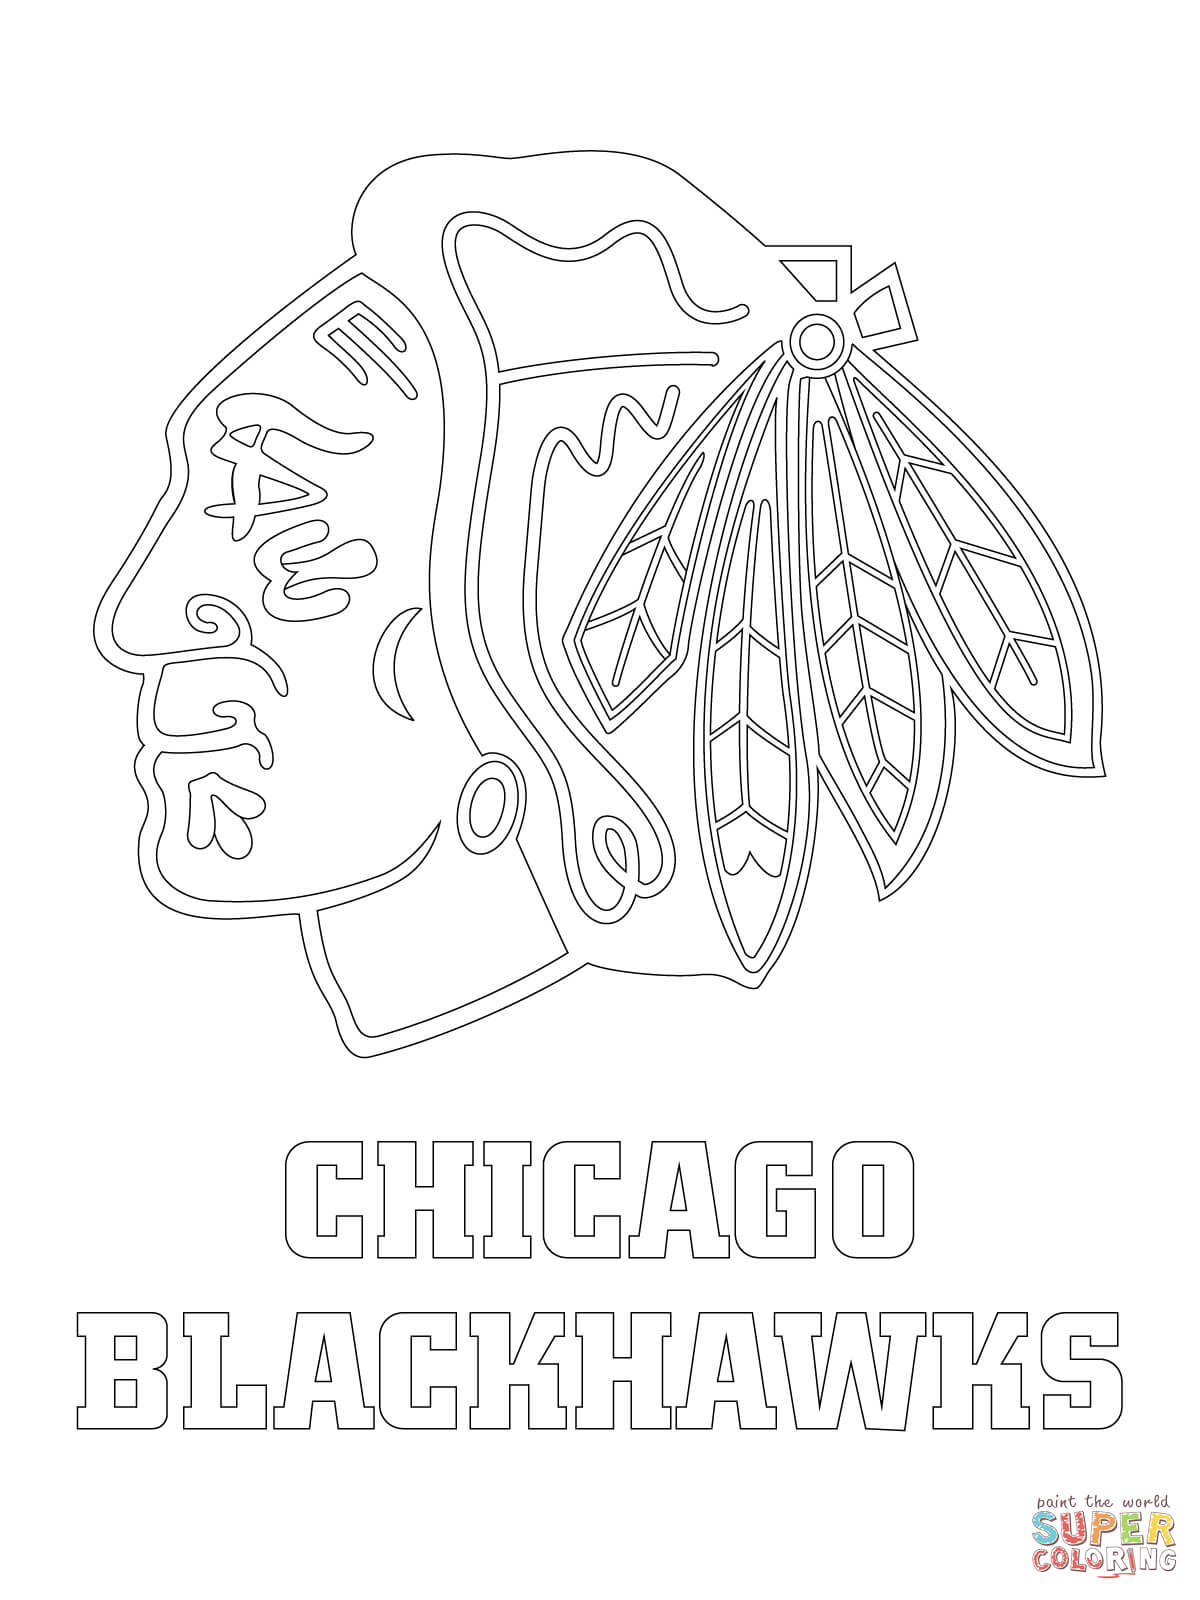 Blackhawks Coloring Pages - Coloring HomeColoring Home